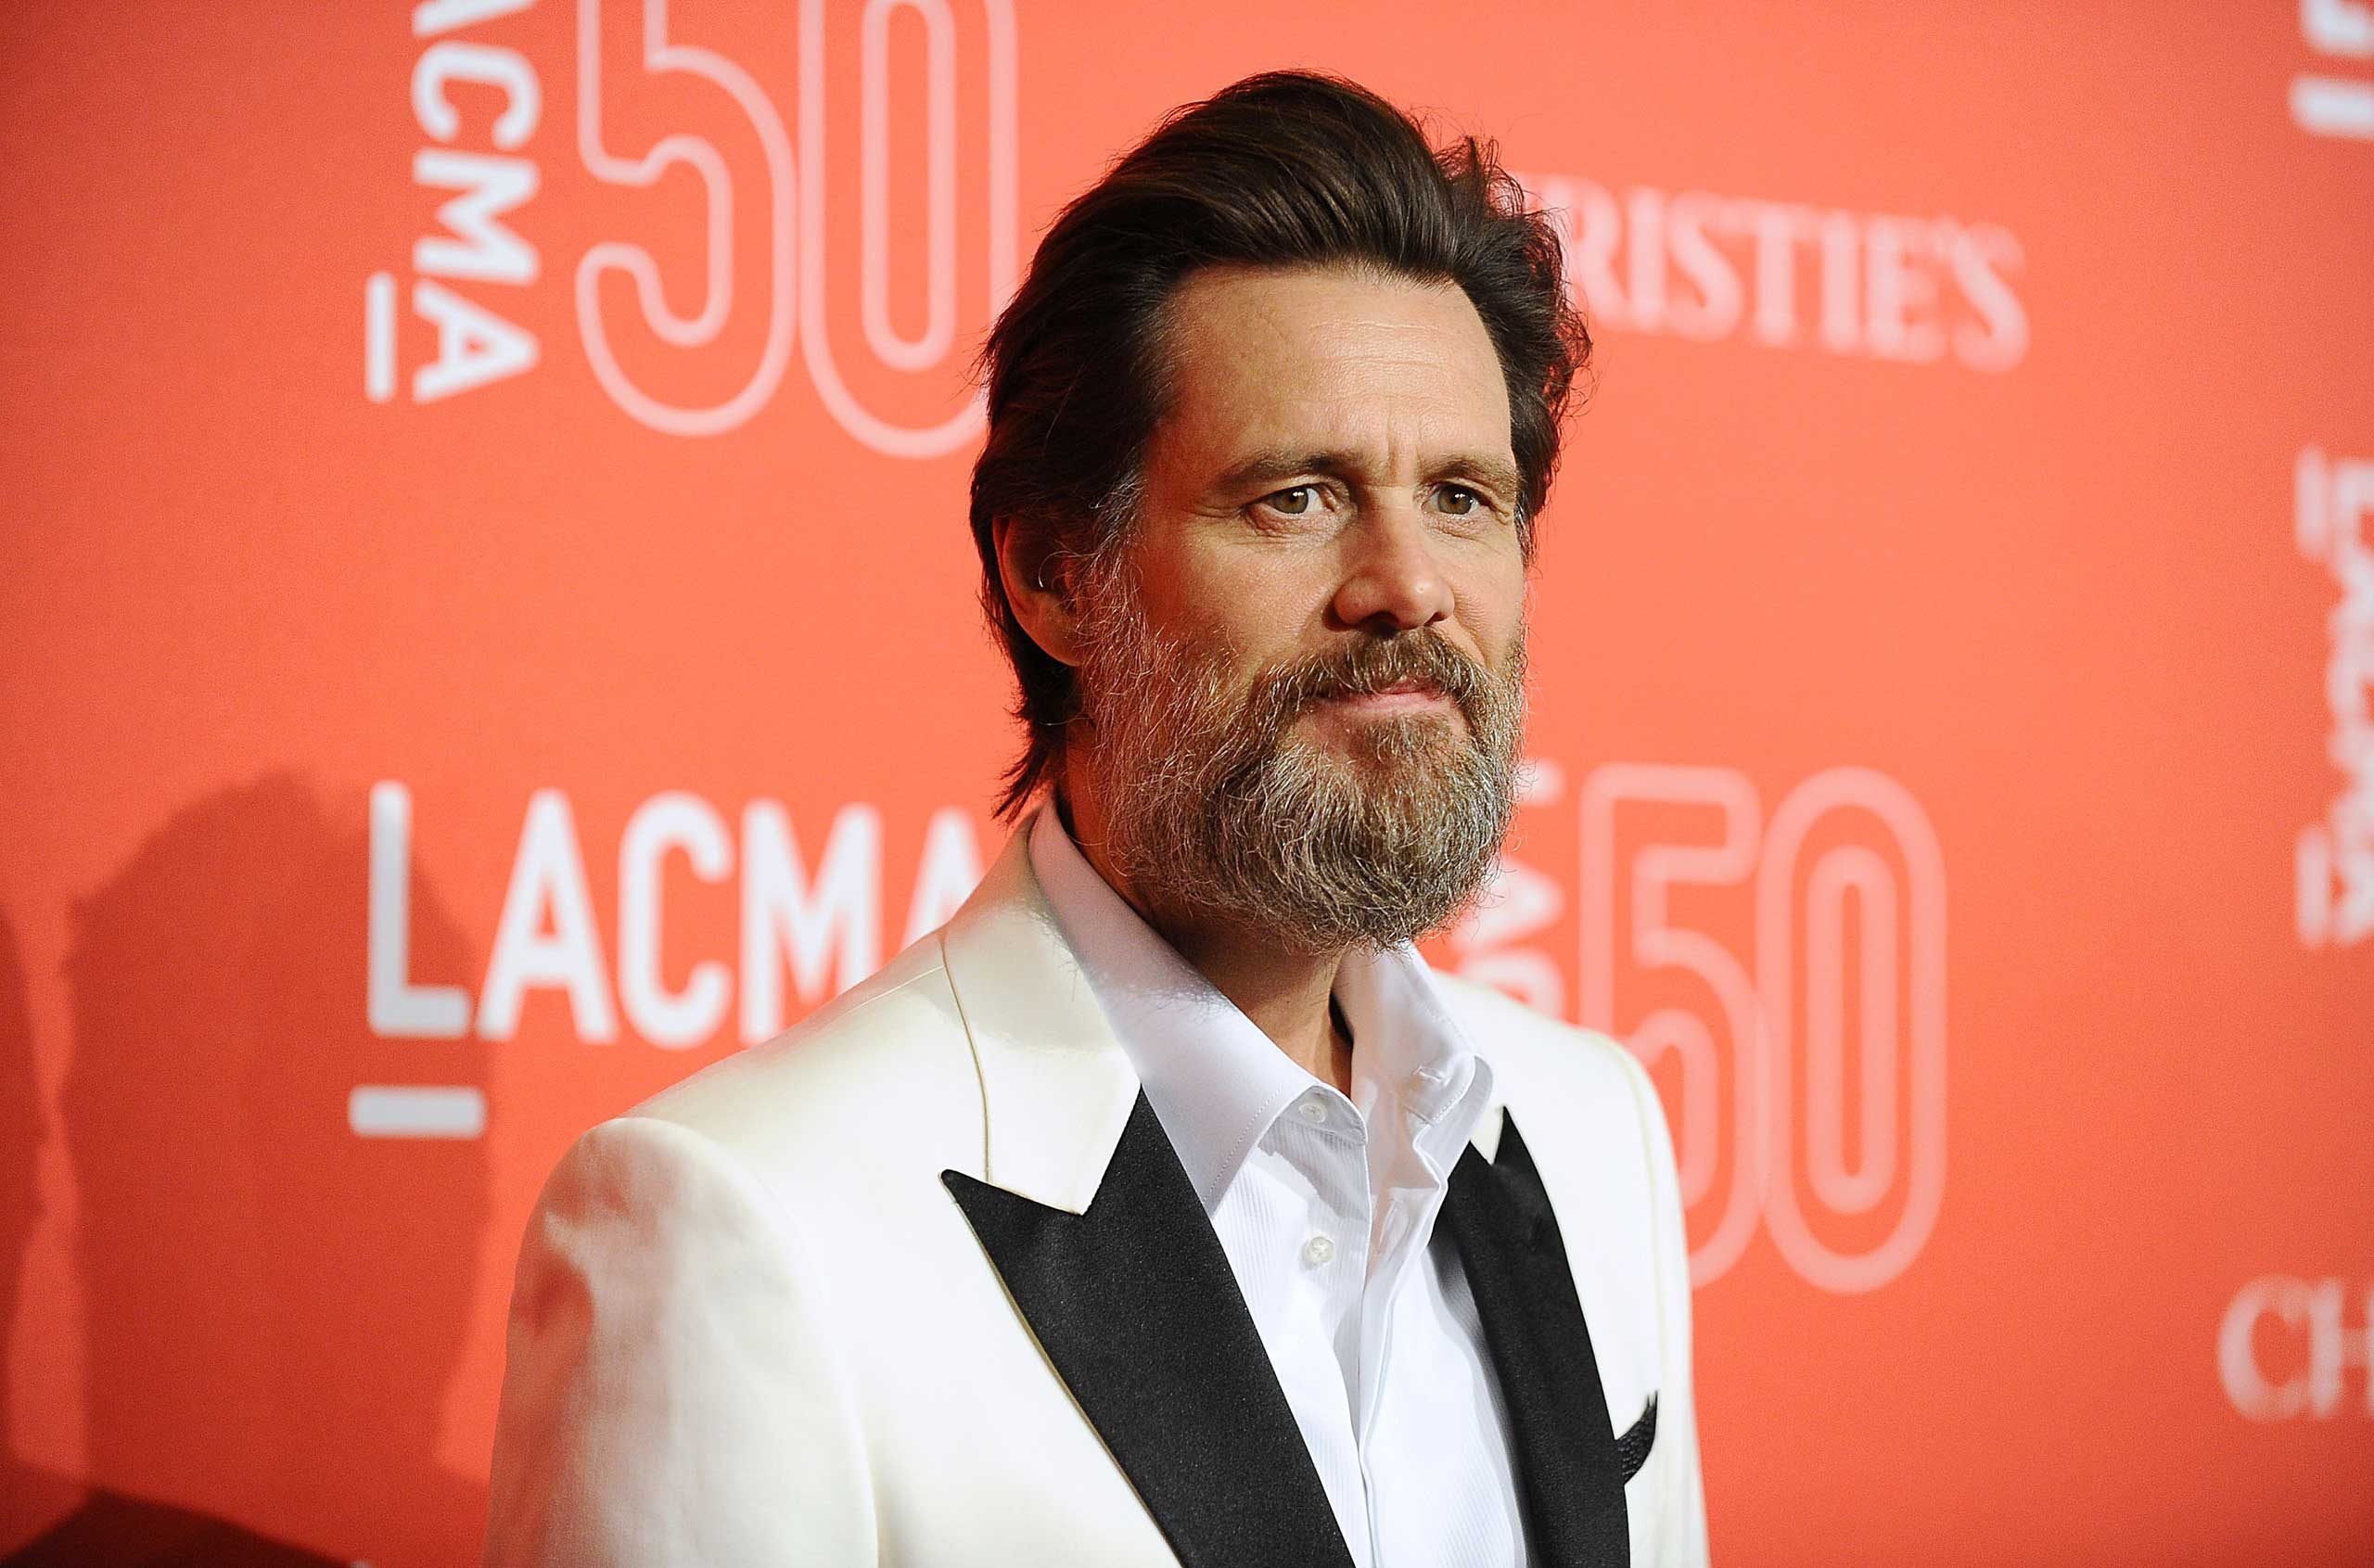 Actor Jim Carrey attends LACMA's 50th anniversary gala at LACMA in Los Angeles on April 18, 2015.